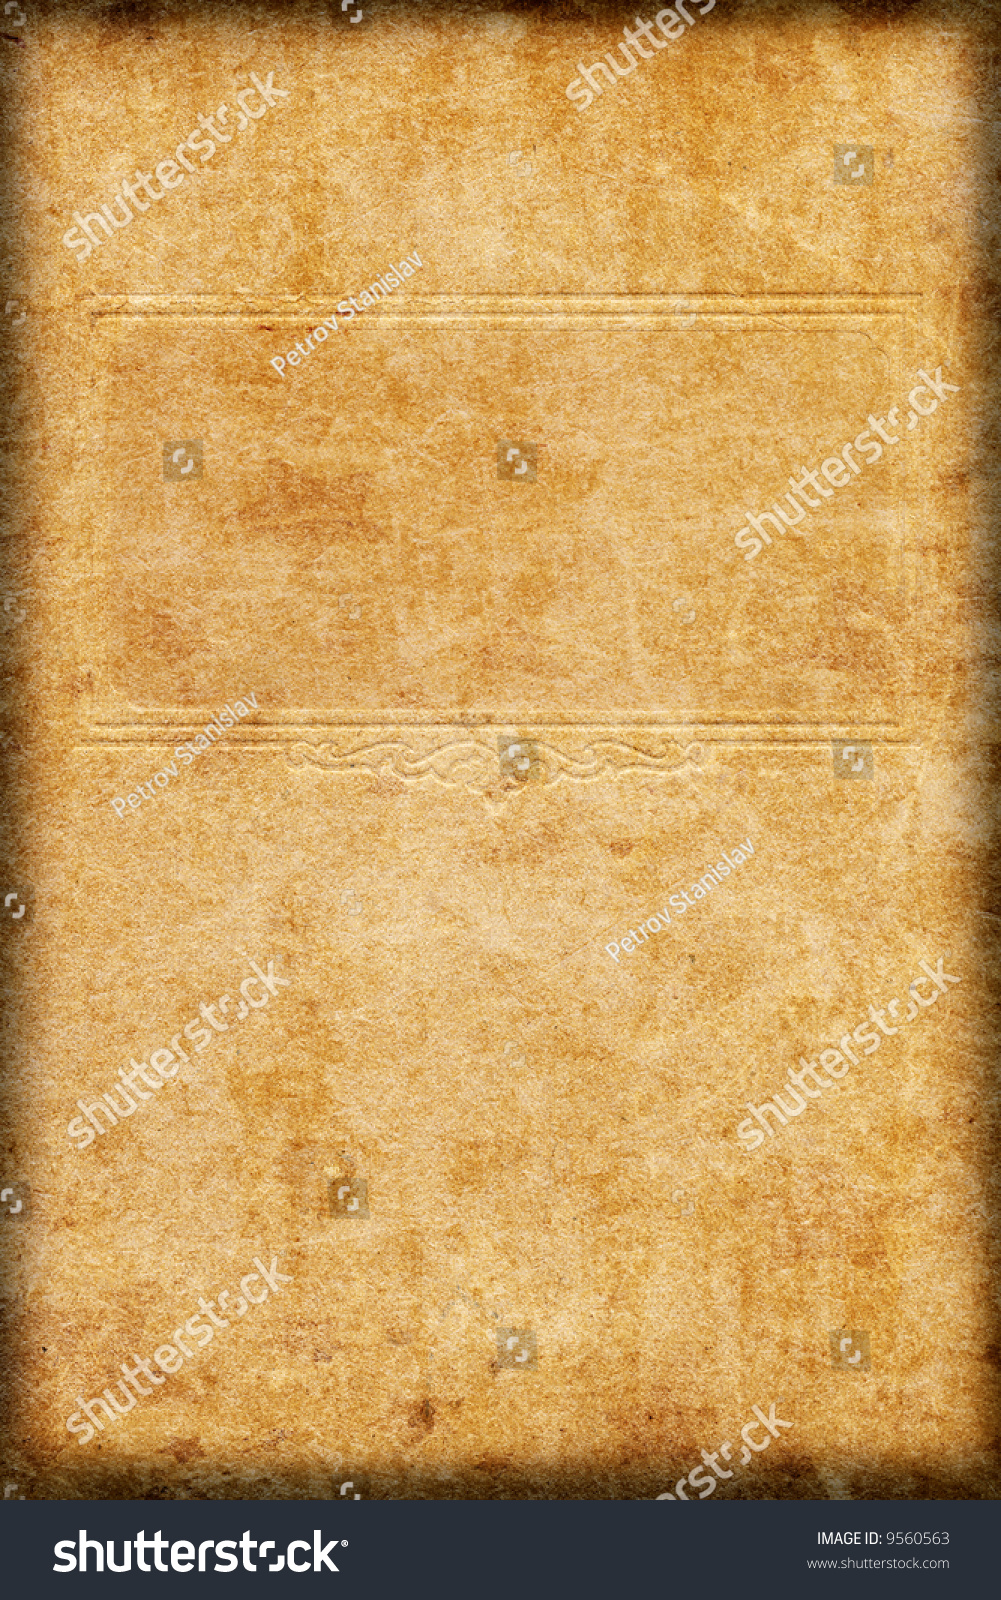 Vintage Book Cover Border ~ Old book cover with border stock photo  shutterstock